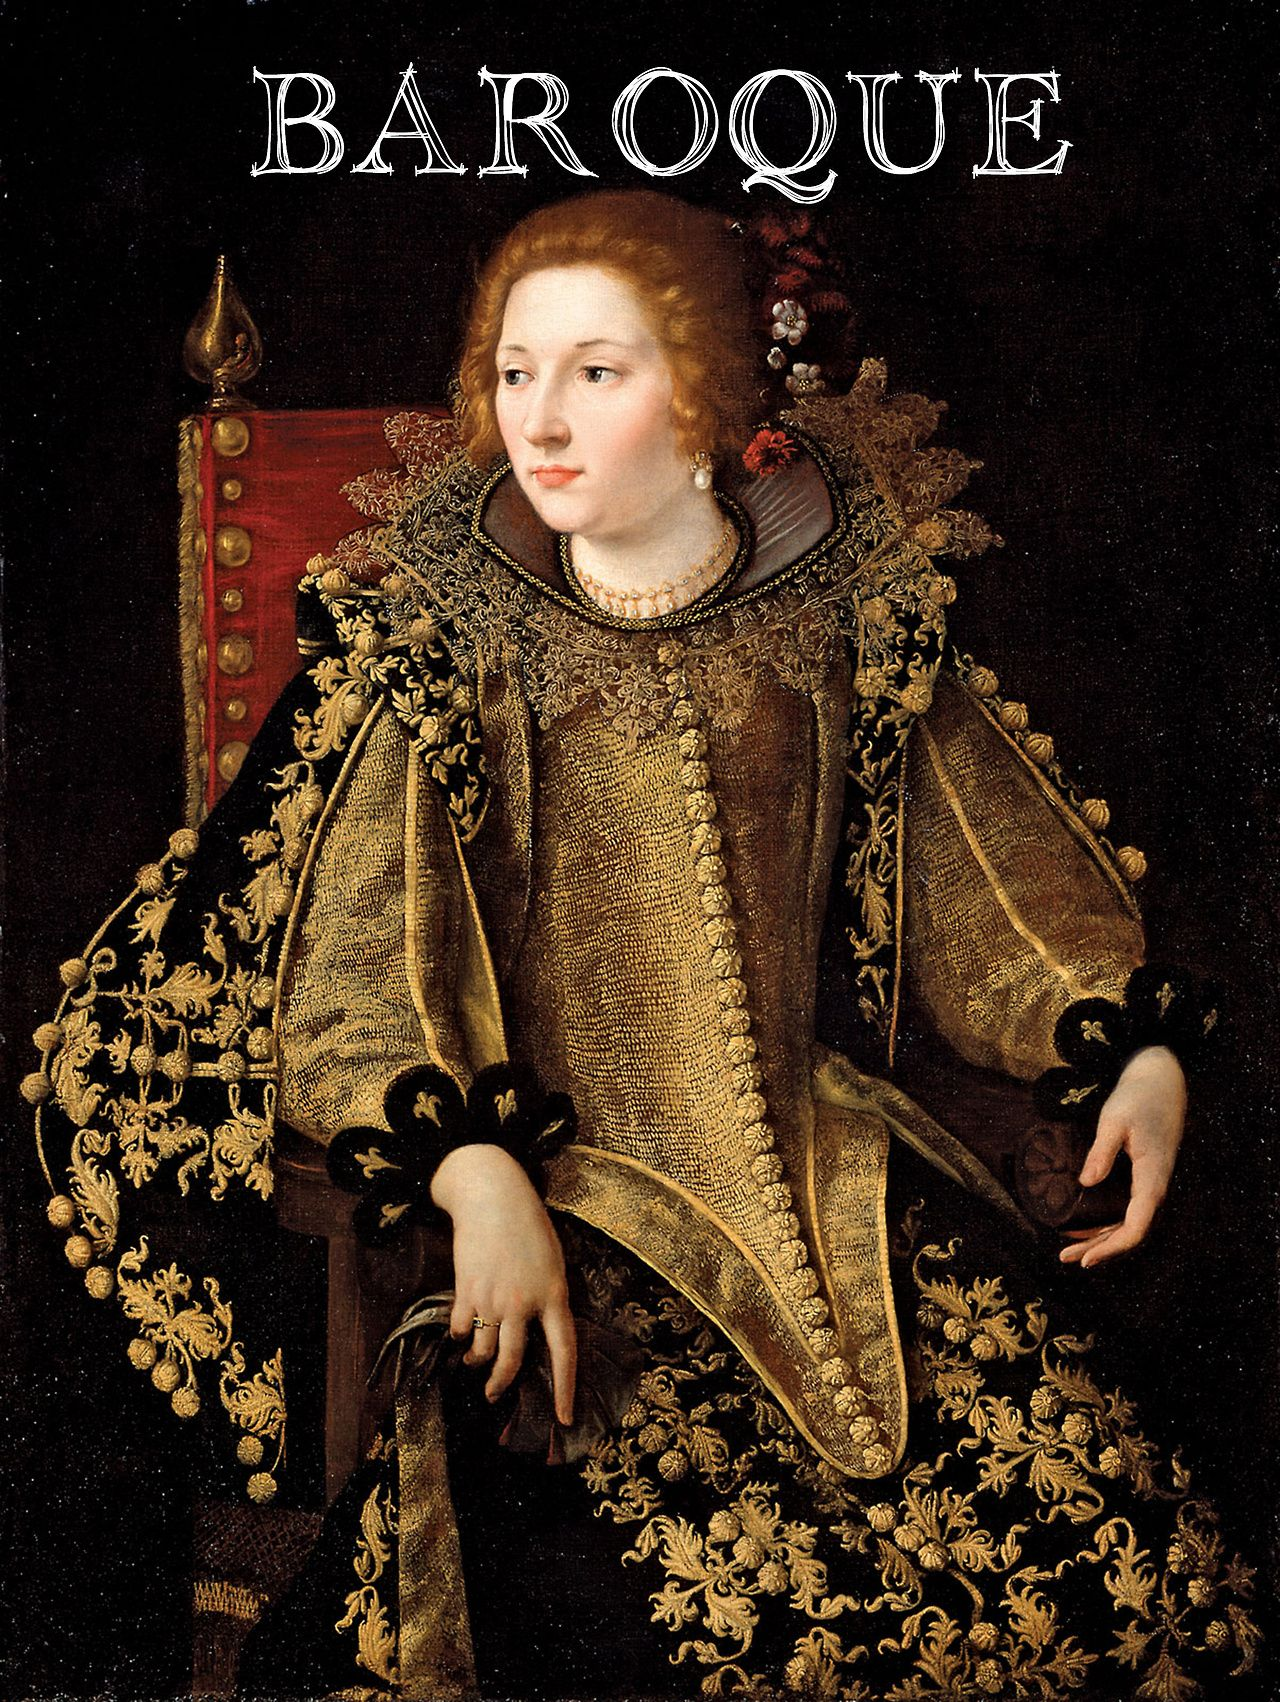 Baroque an art movement that began around 1600 and lasted